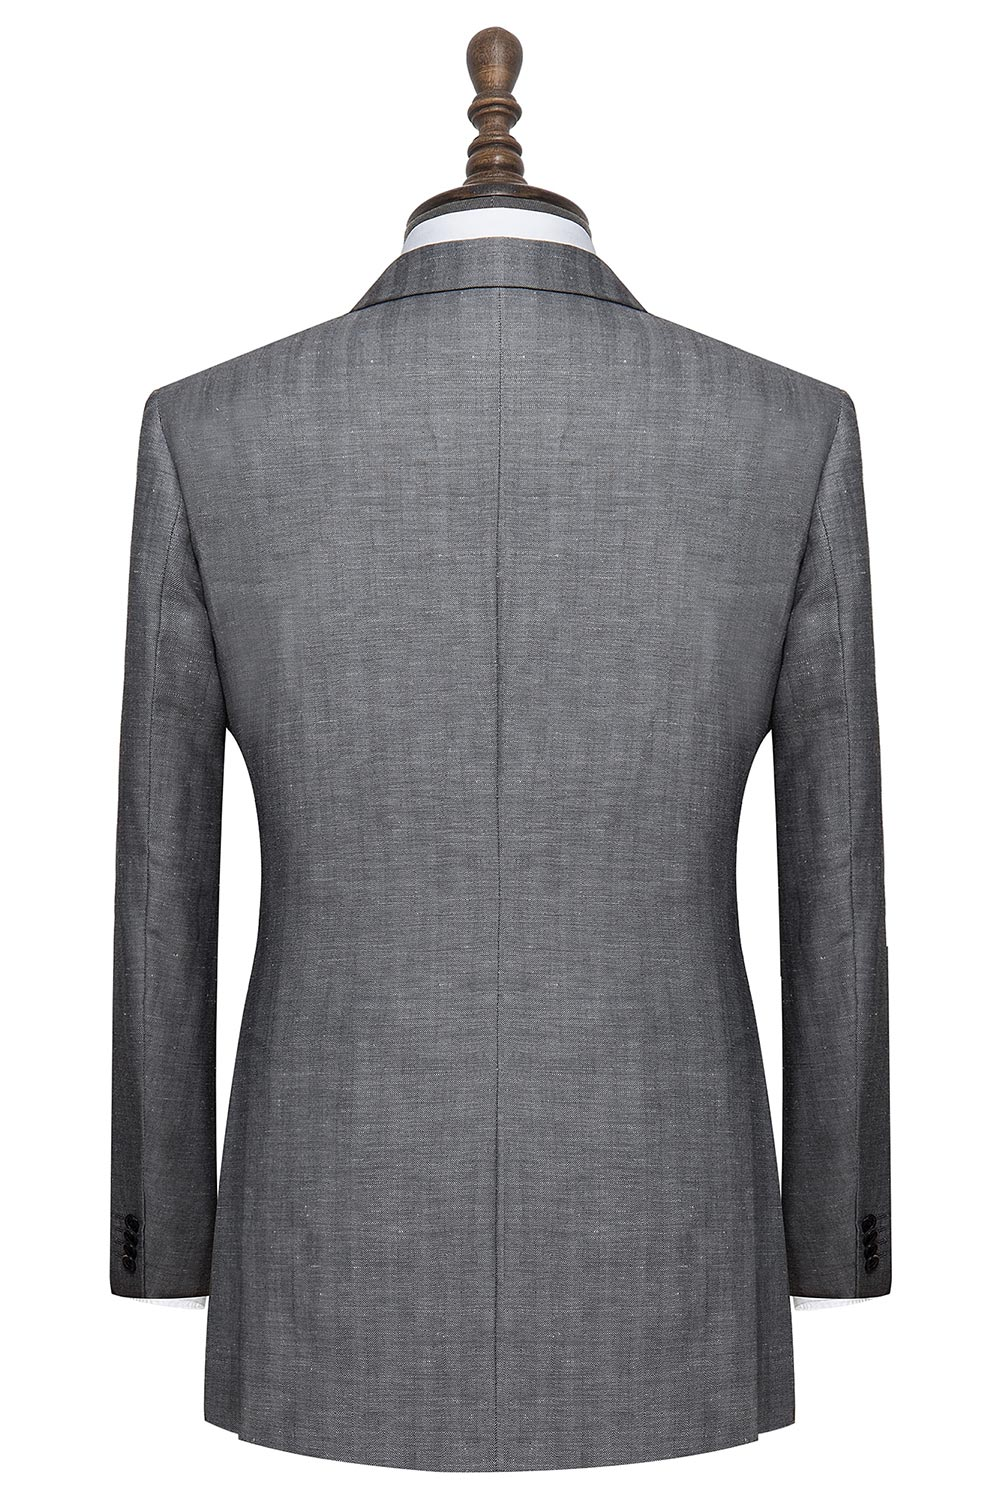 InStitchu Collection The London mens suit